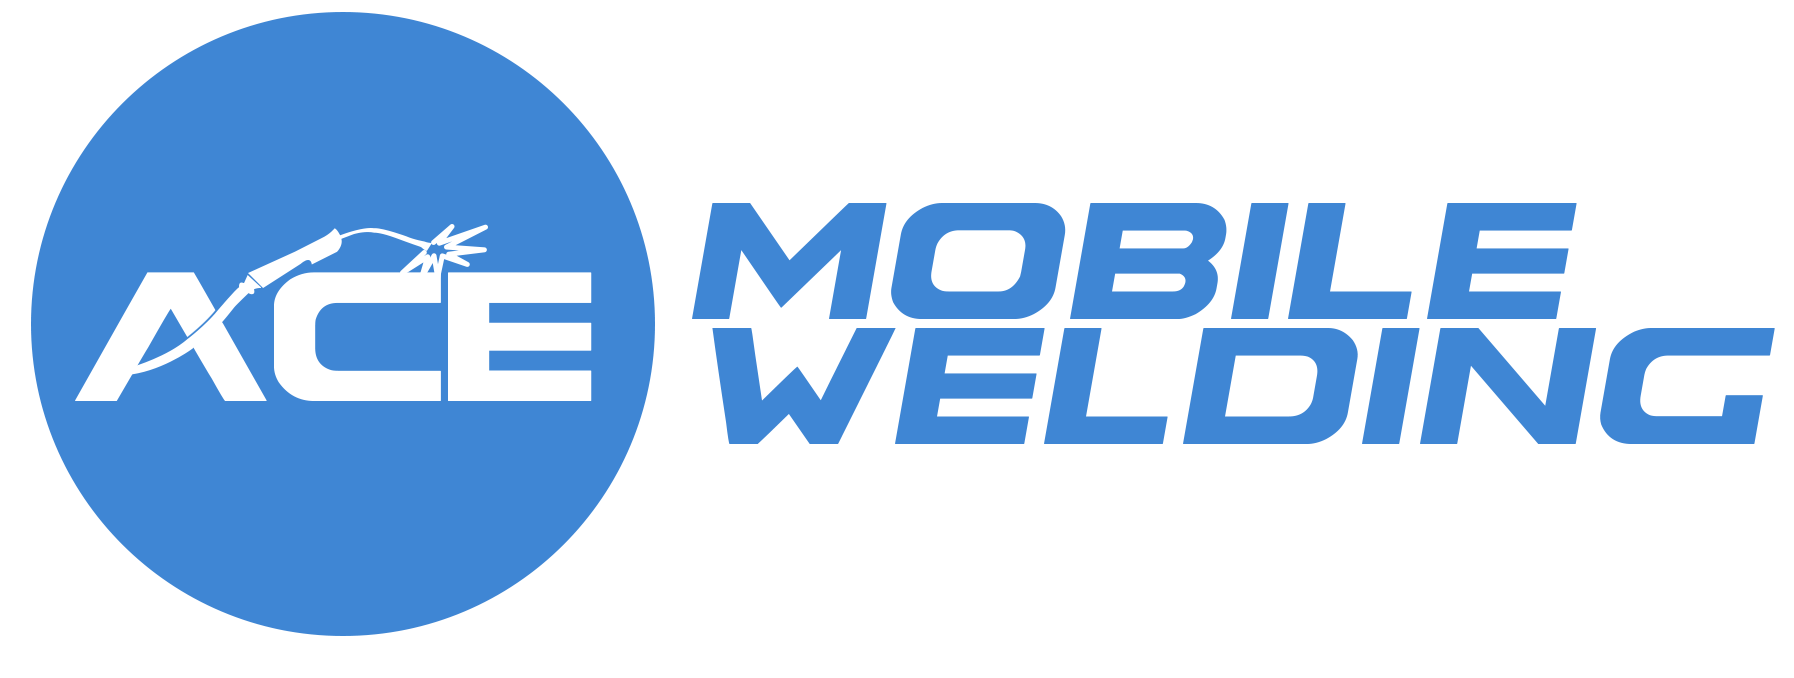 Ace Mobile Welding